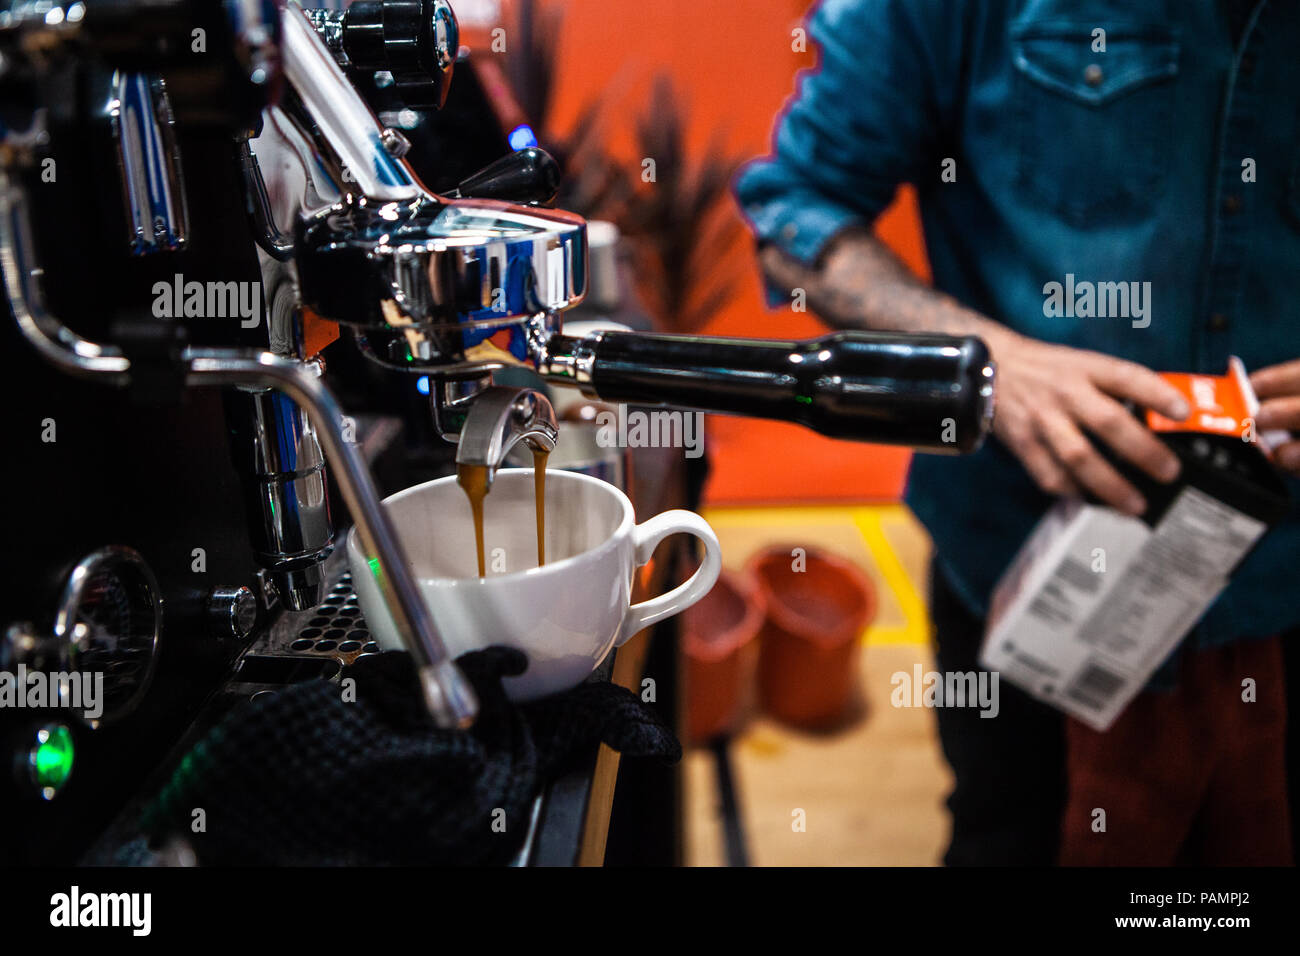 Fancy stainless steel coffee machine pouring a double espresso in a coffee shop - Stock Image